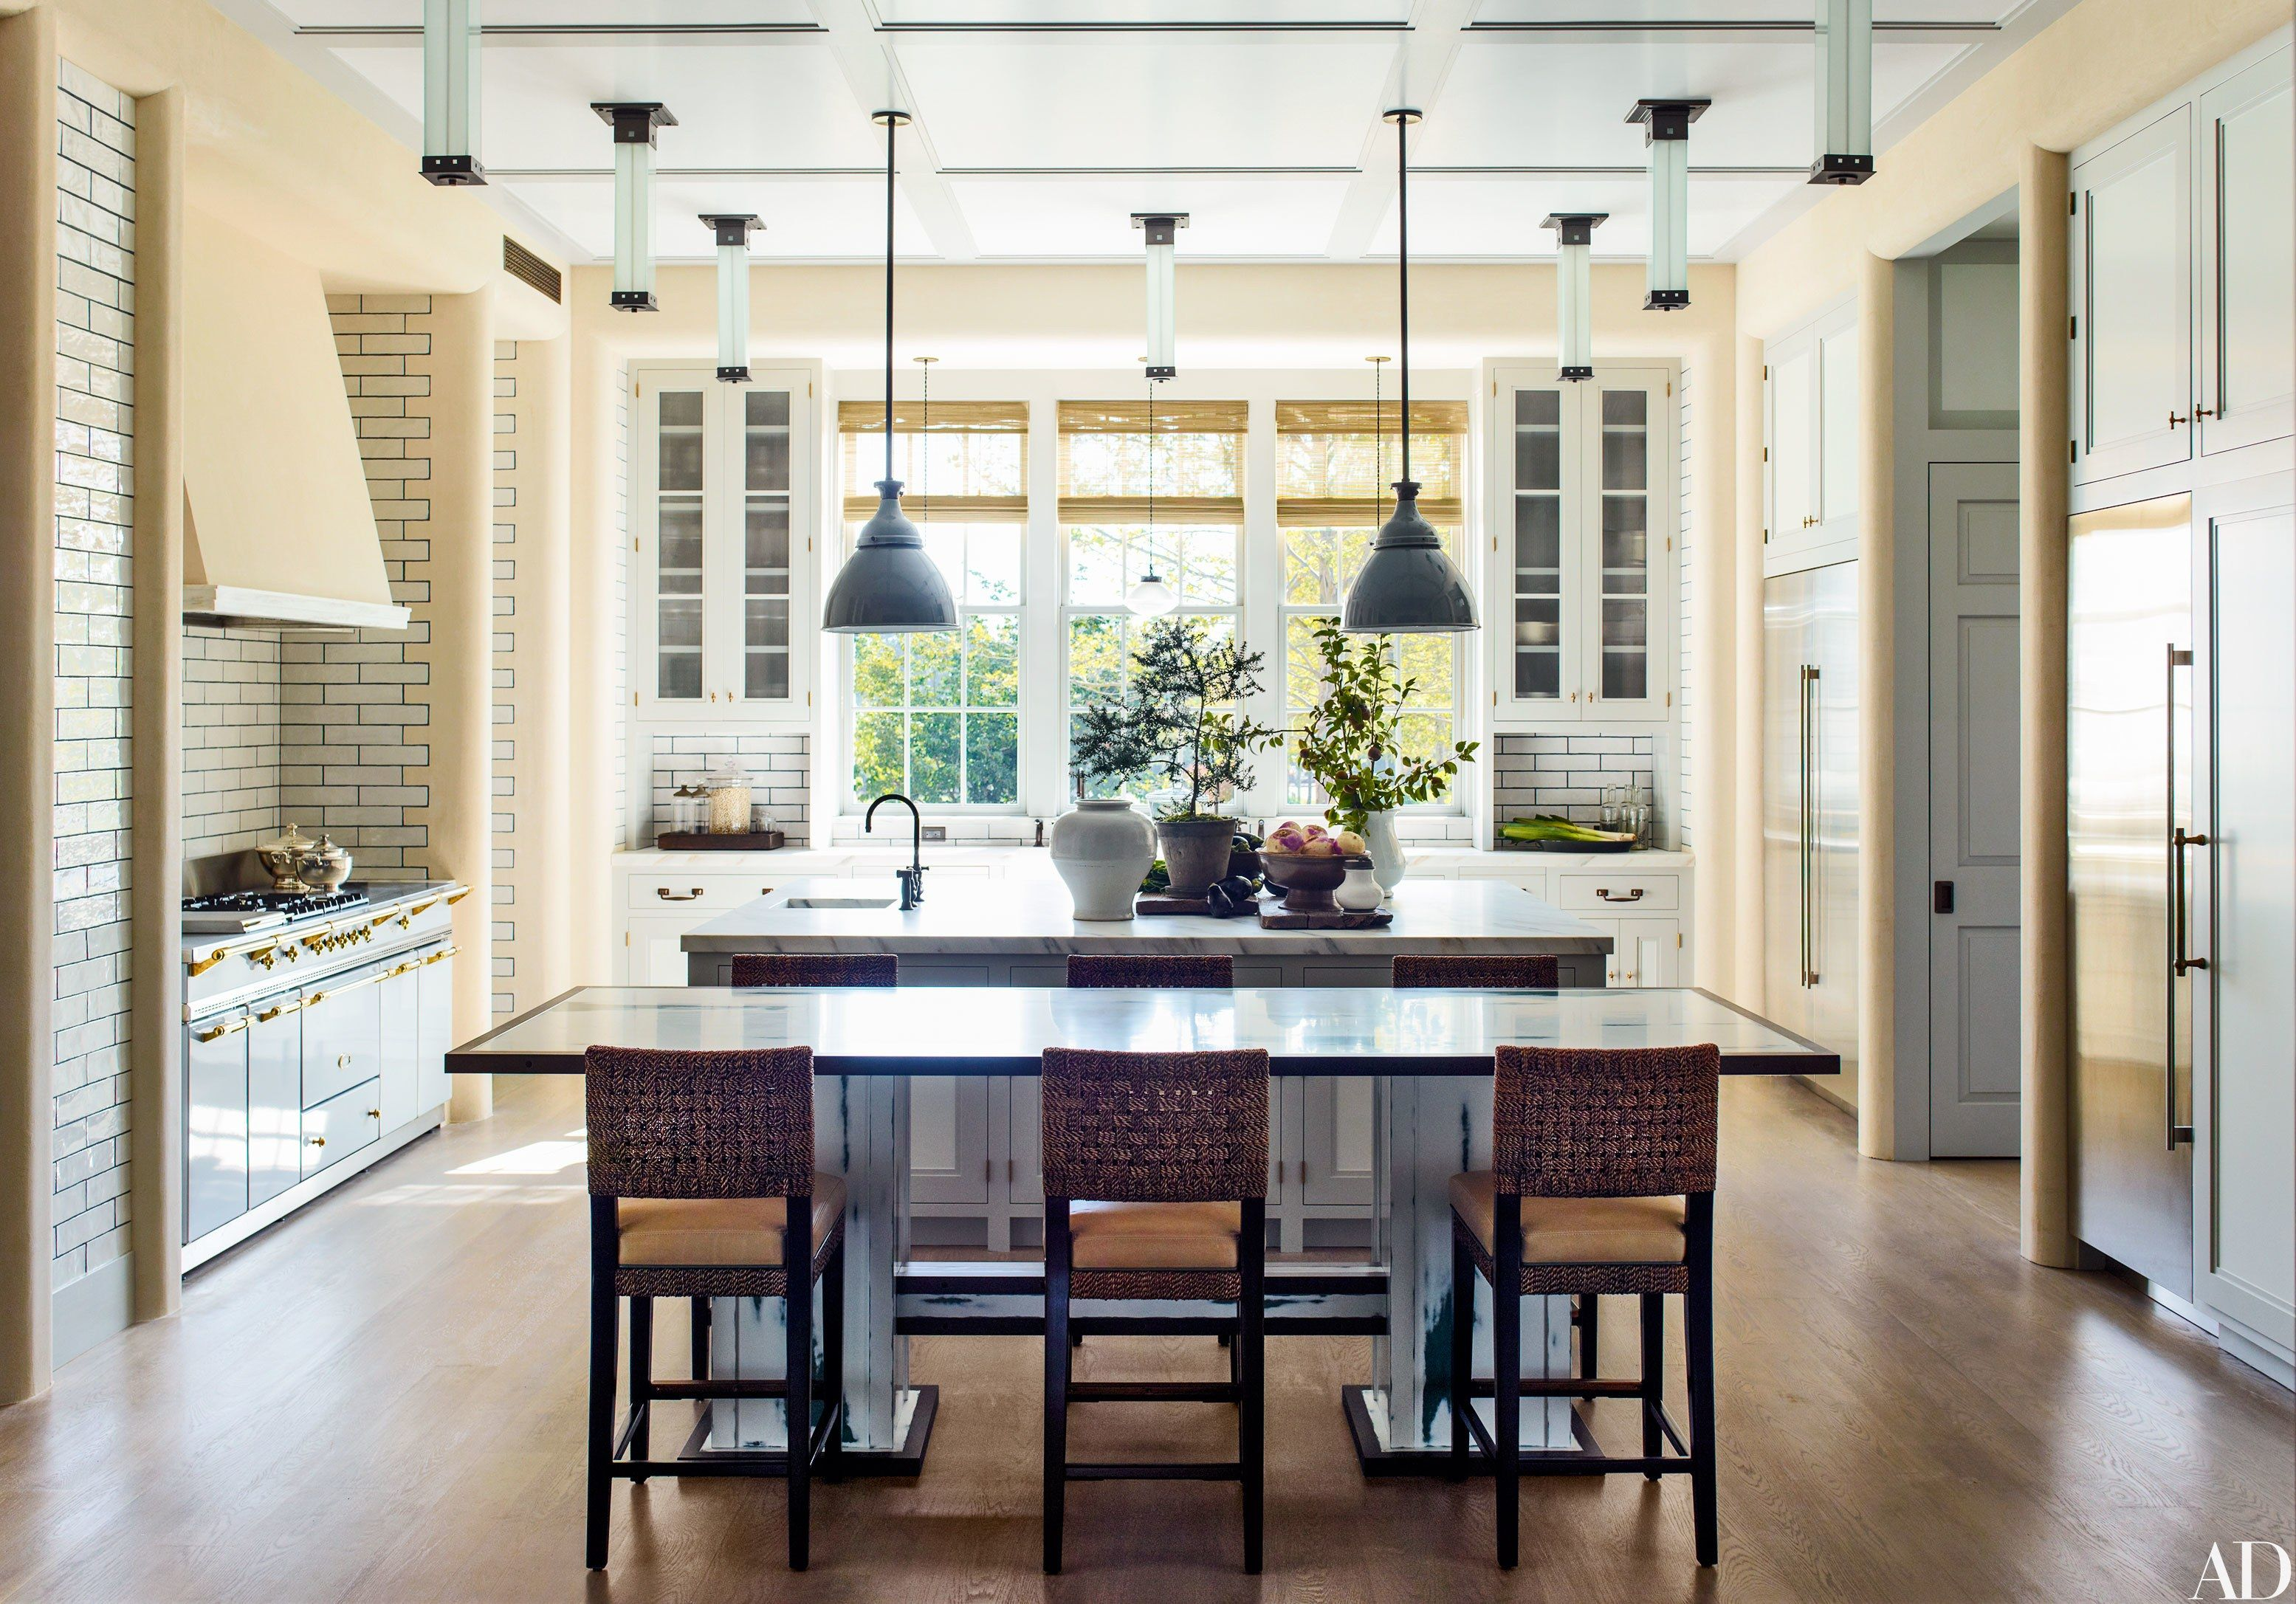 21 Stunning Kitchen Island Ideas | Las aves, Ave y Moderno